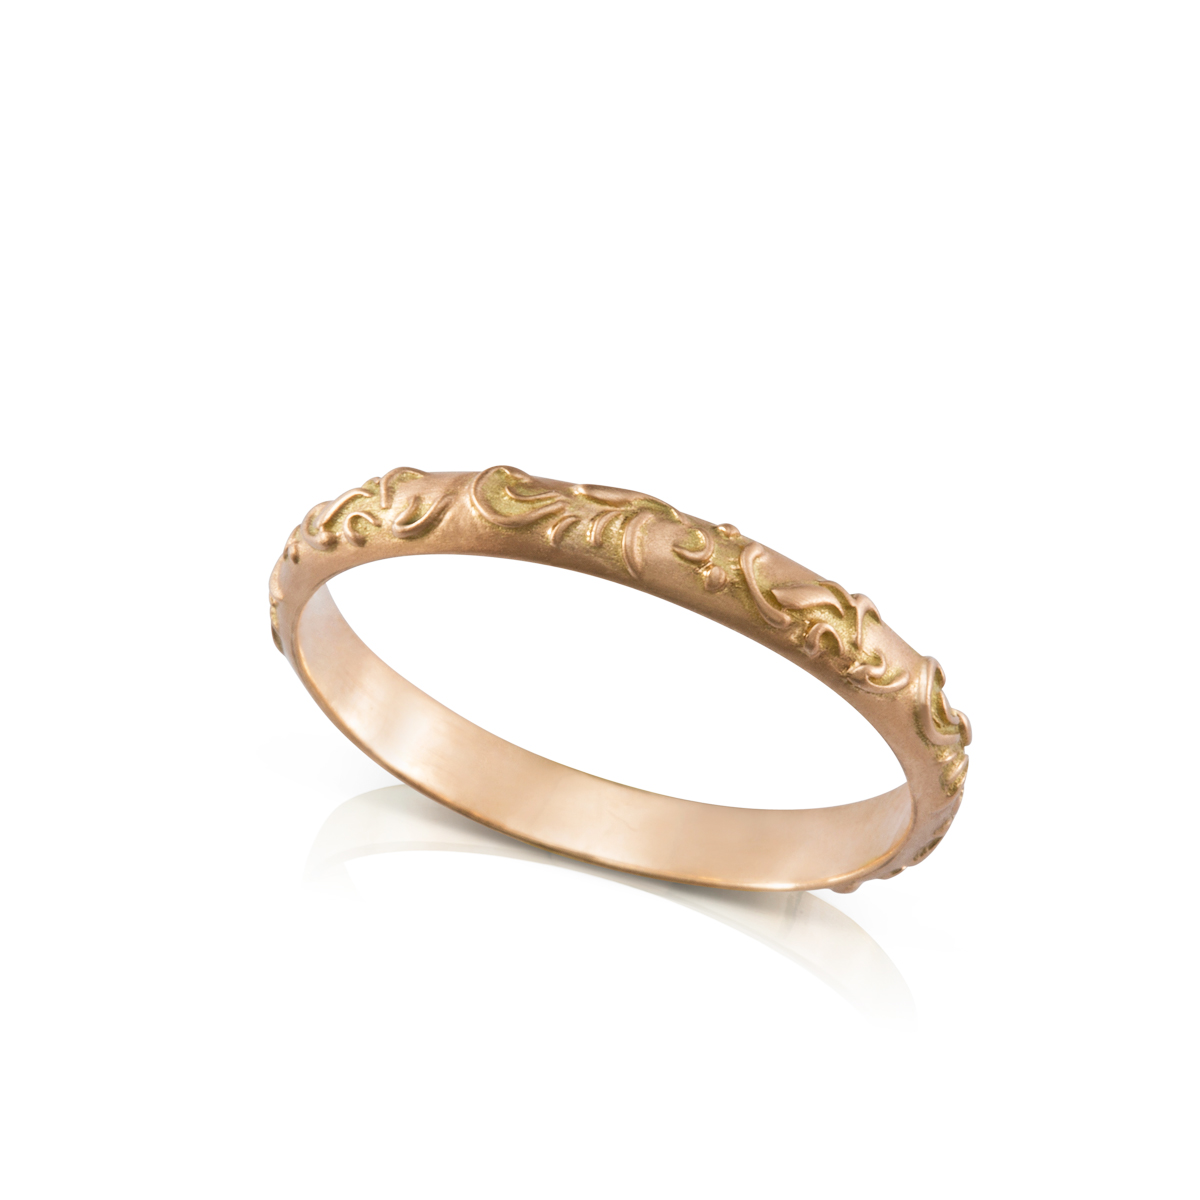 Gold ring decorated with a flower pattern in relief